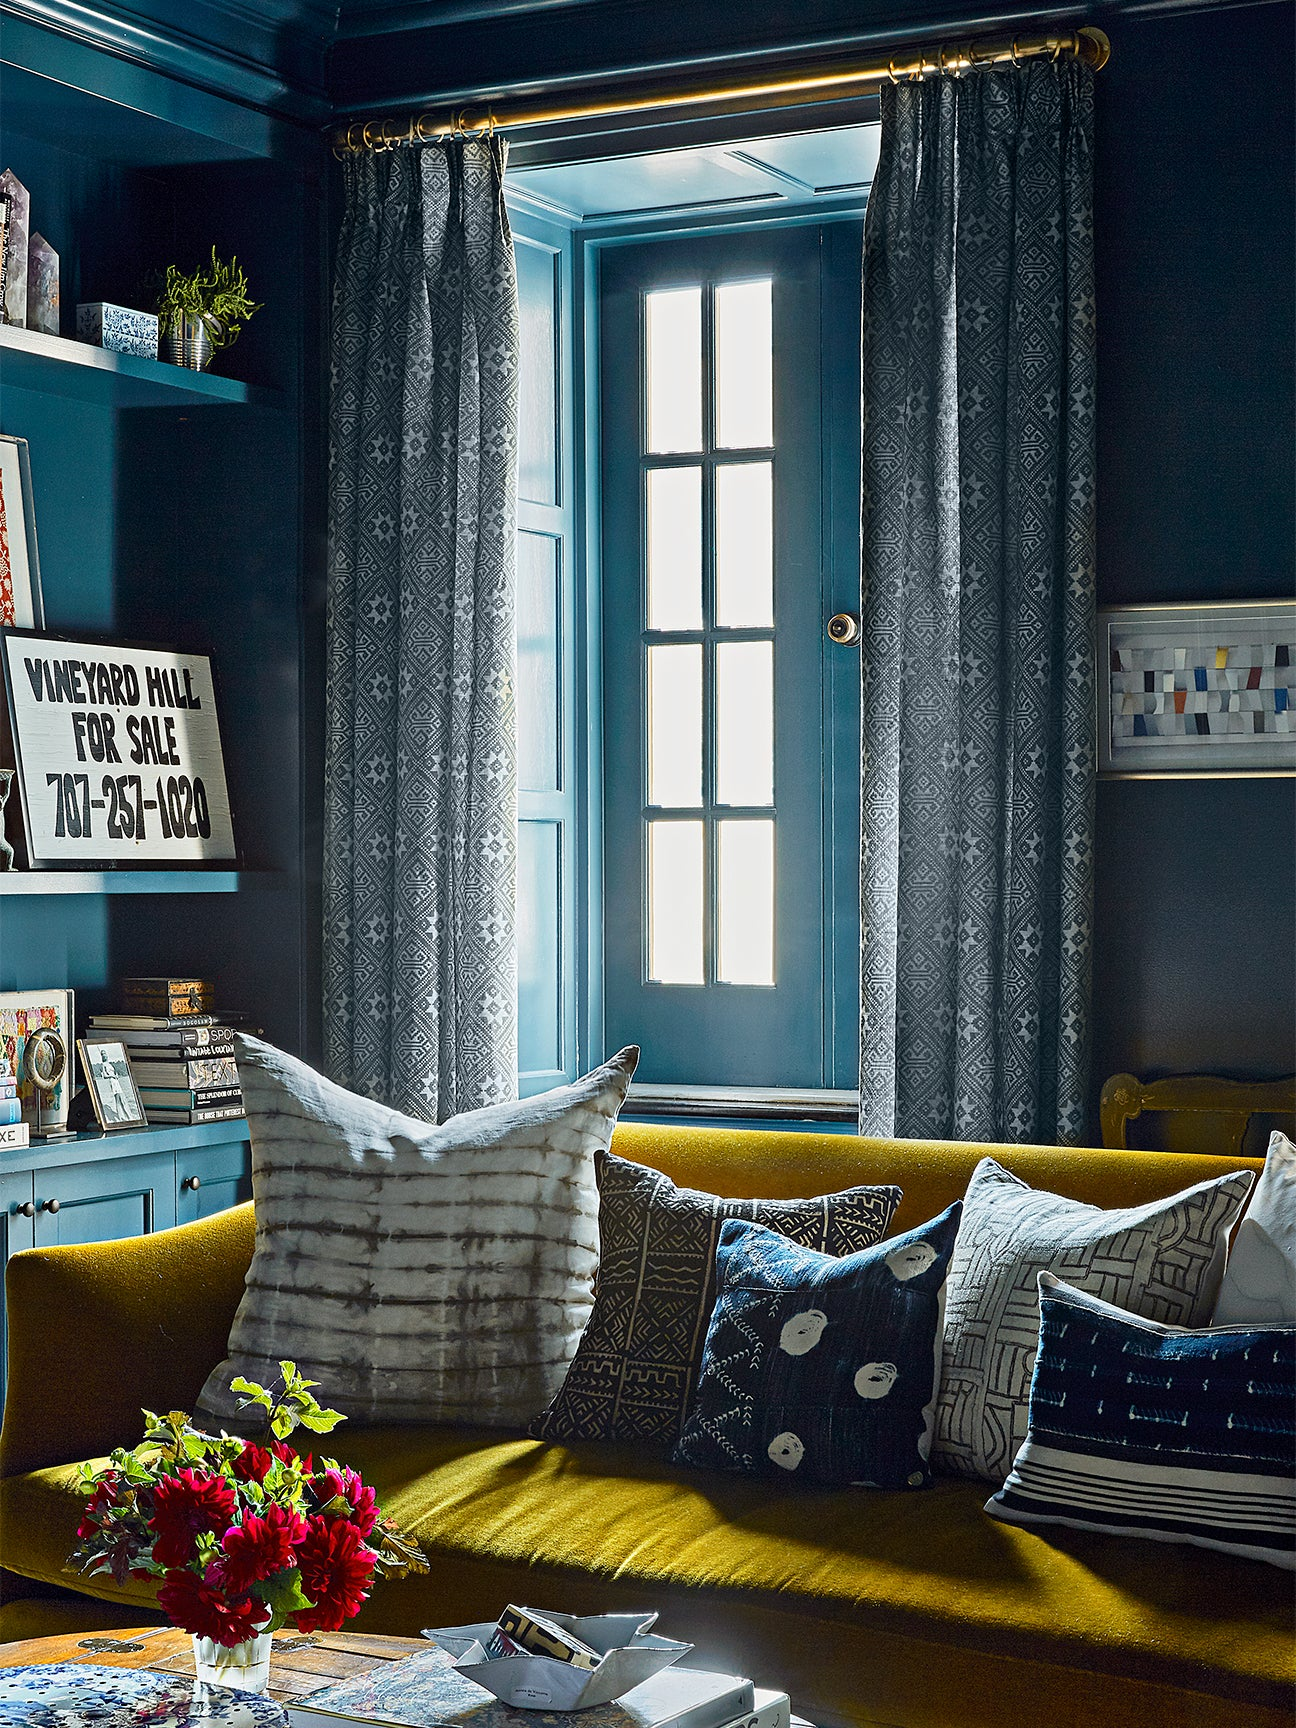 The One Thing Most People Overlook When Picking a Paint Color